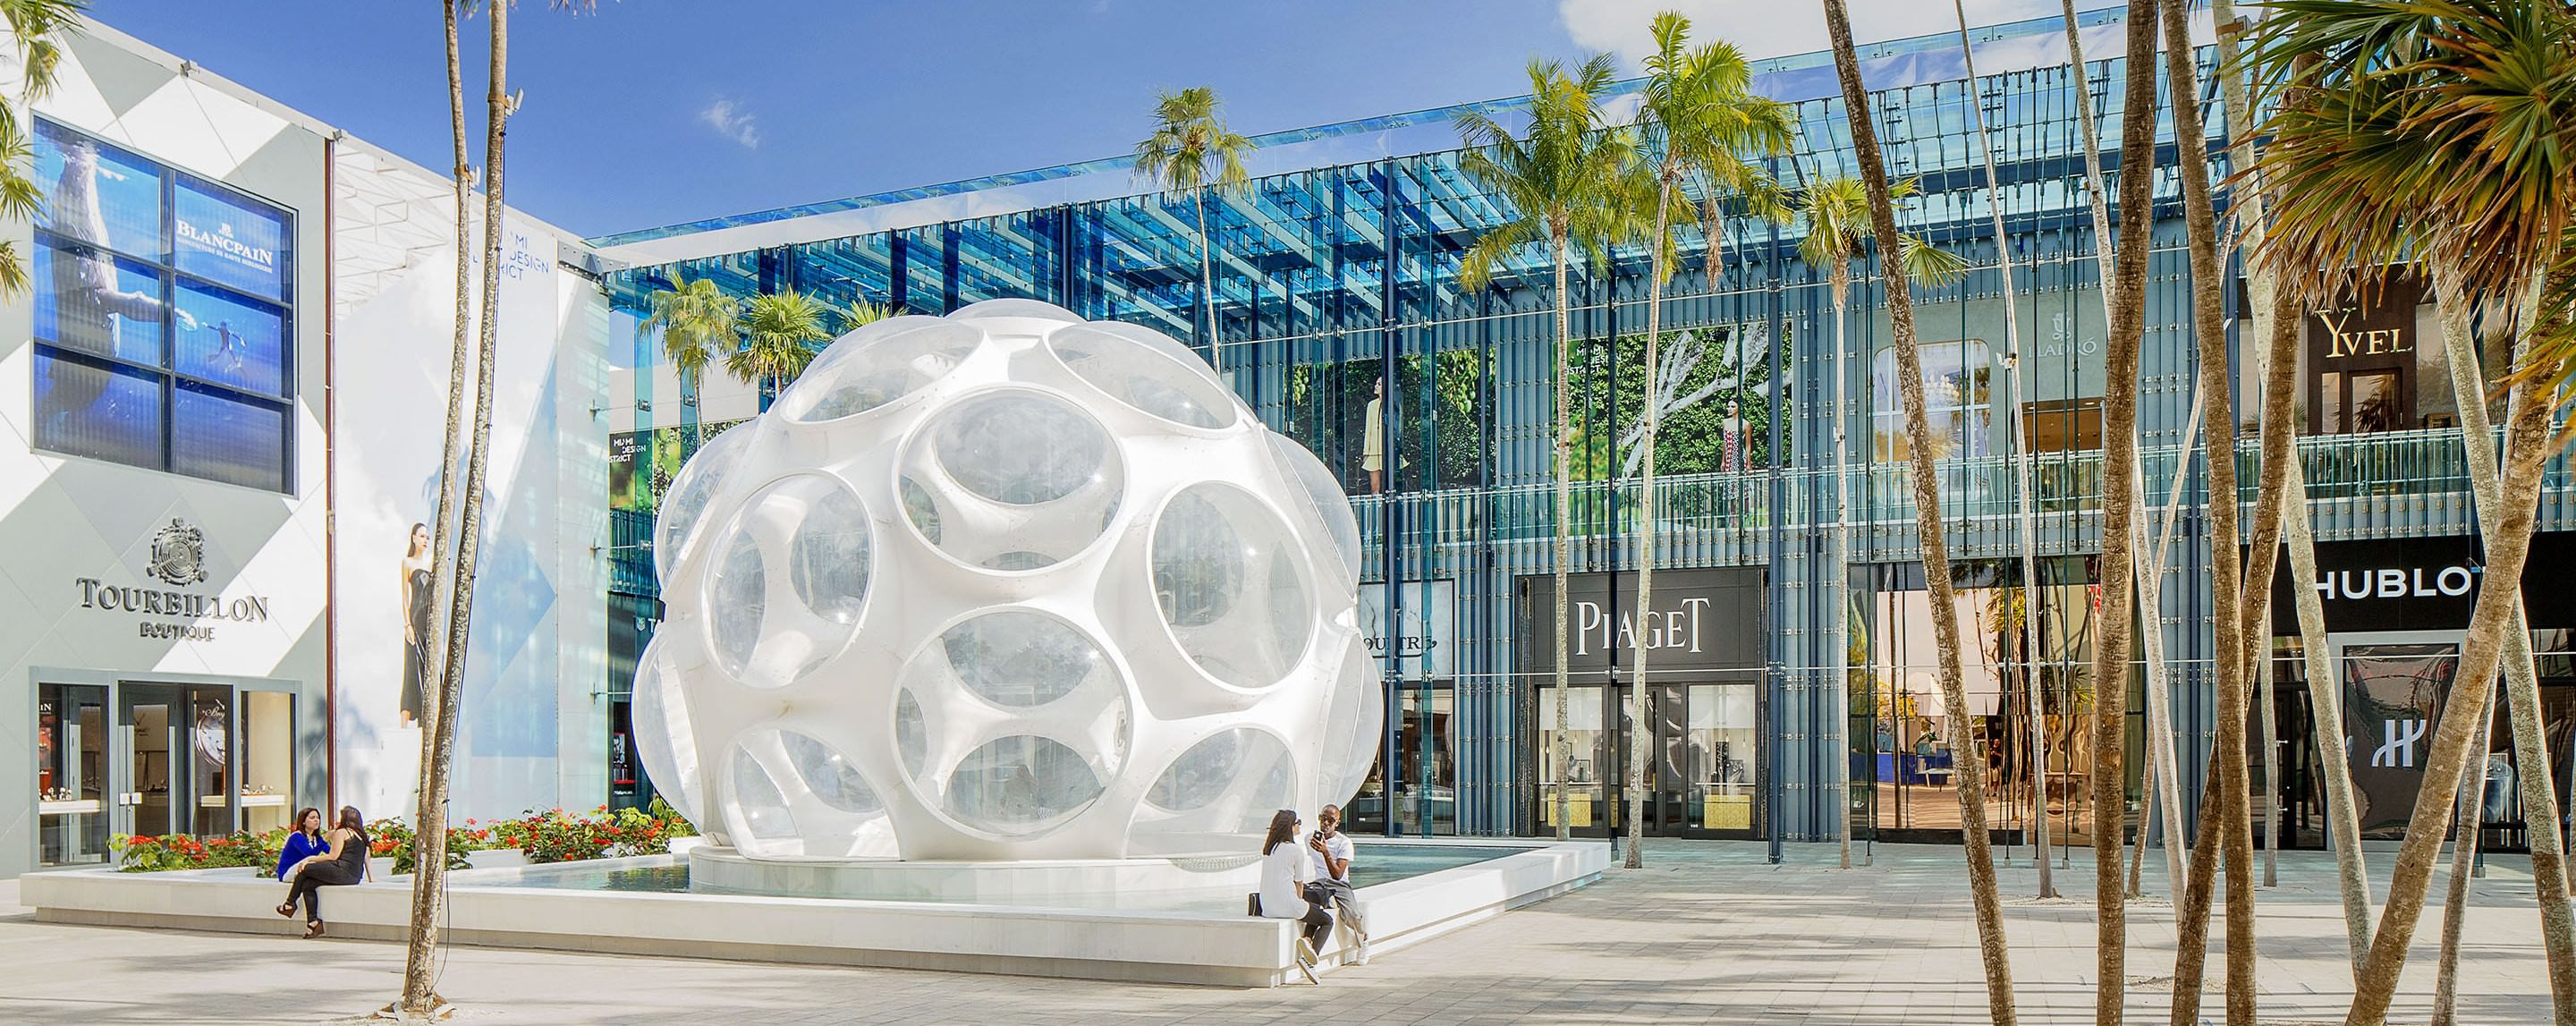 A large white sculpture stands outside of a glass-fronted mall on a sunny day. The store Tourbillon is visible.